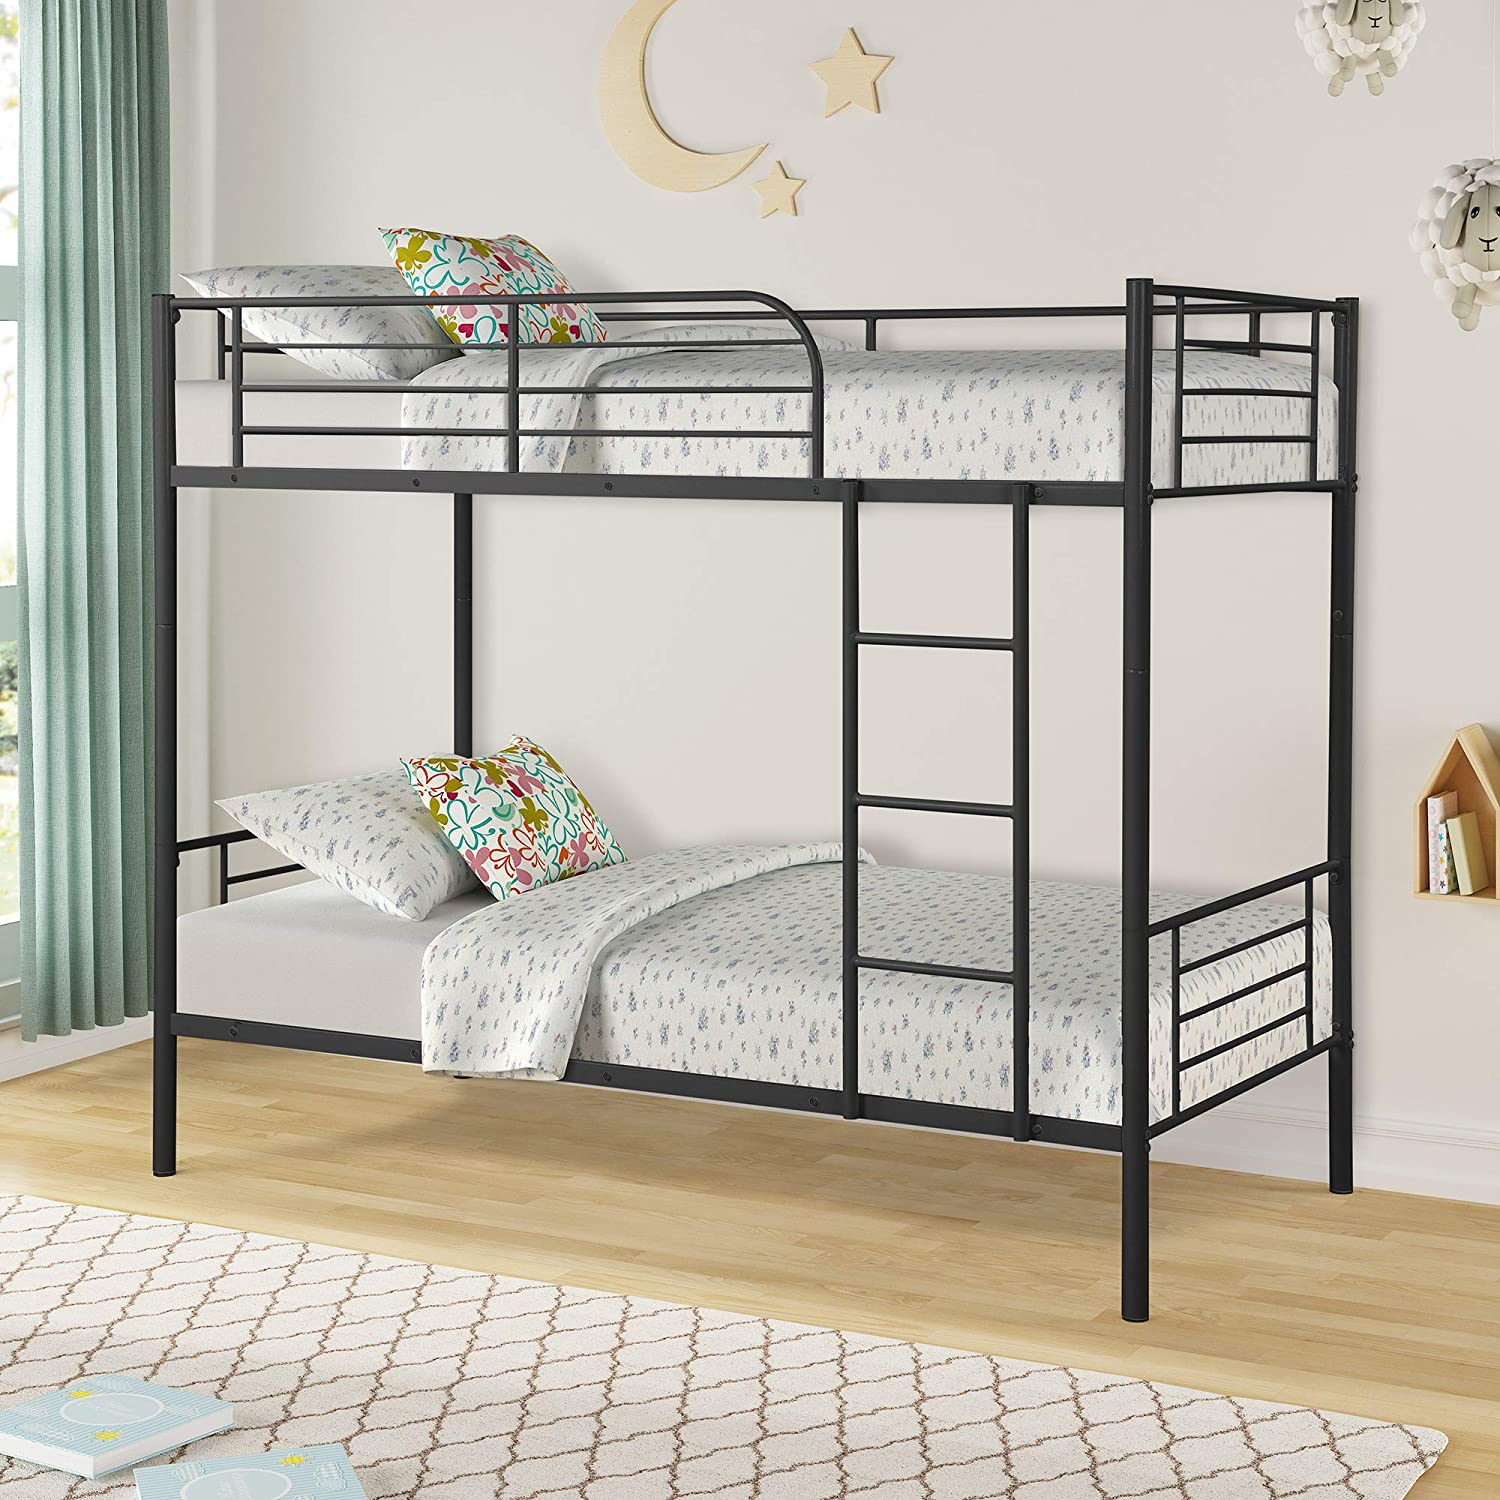 Modern Style Solid Twin Over Twin Bunk Bed Metal Steel Beds with Ladder Black US